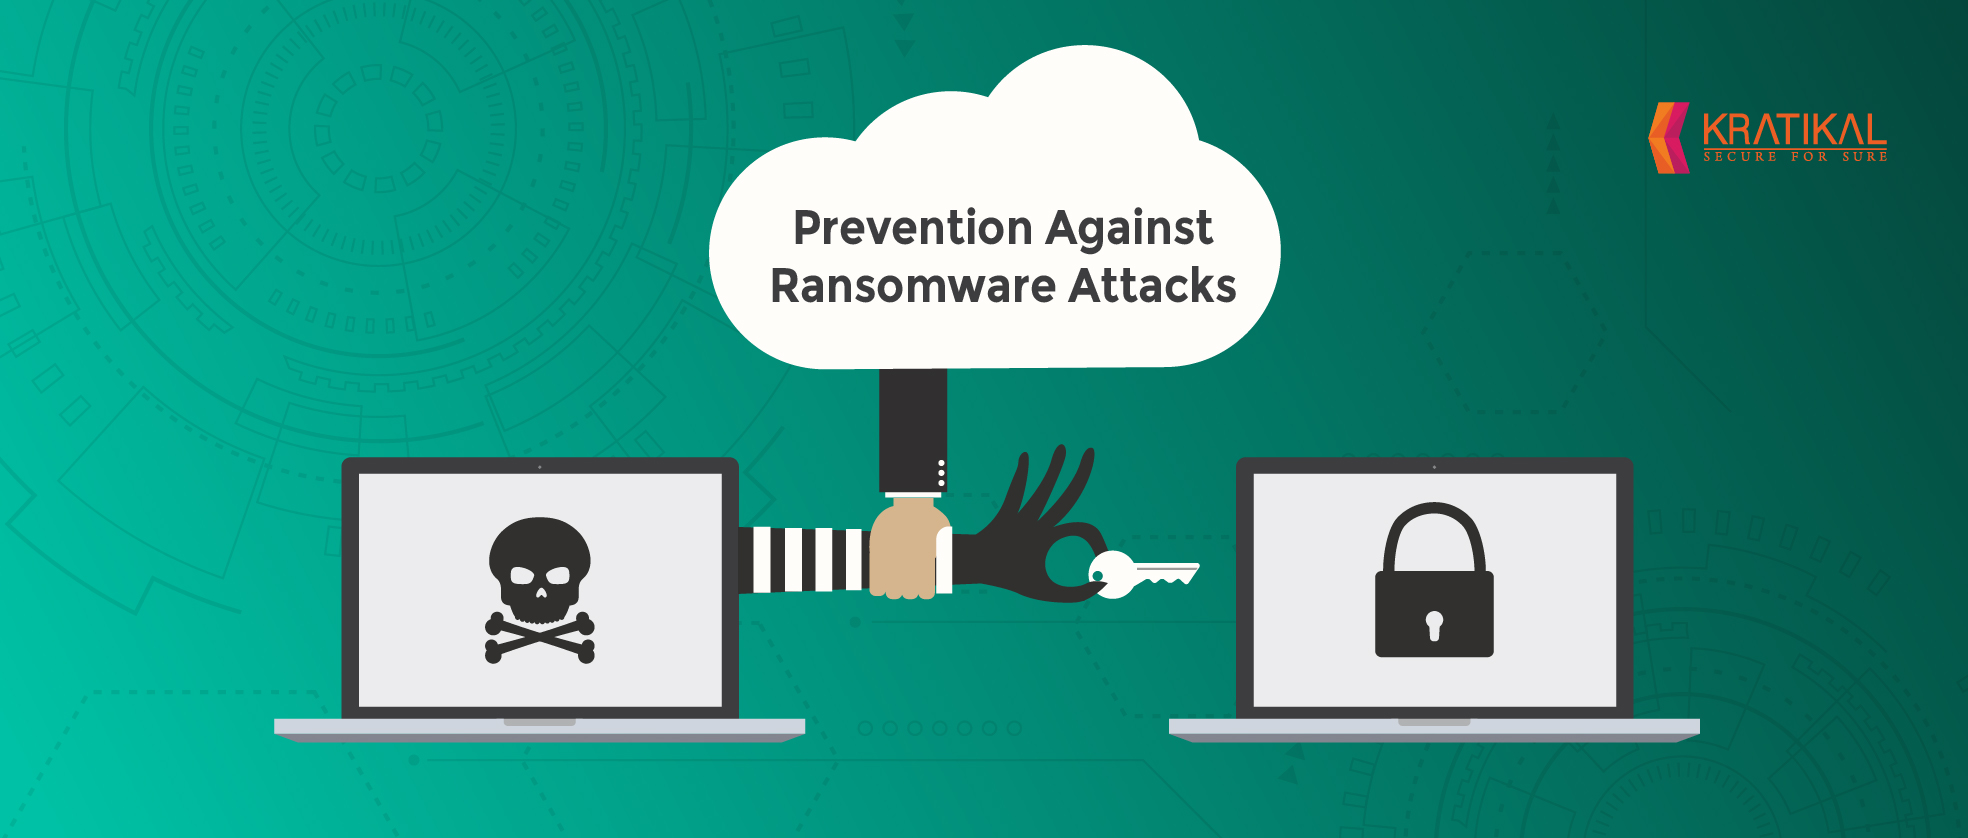 Preventive actions against ransomware attacks